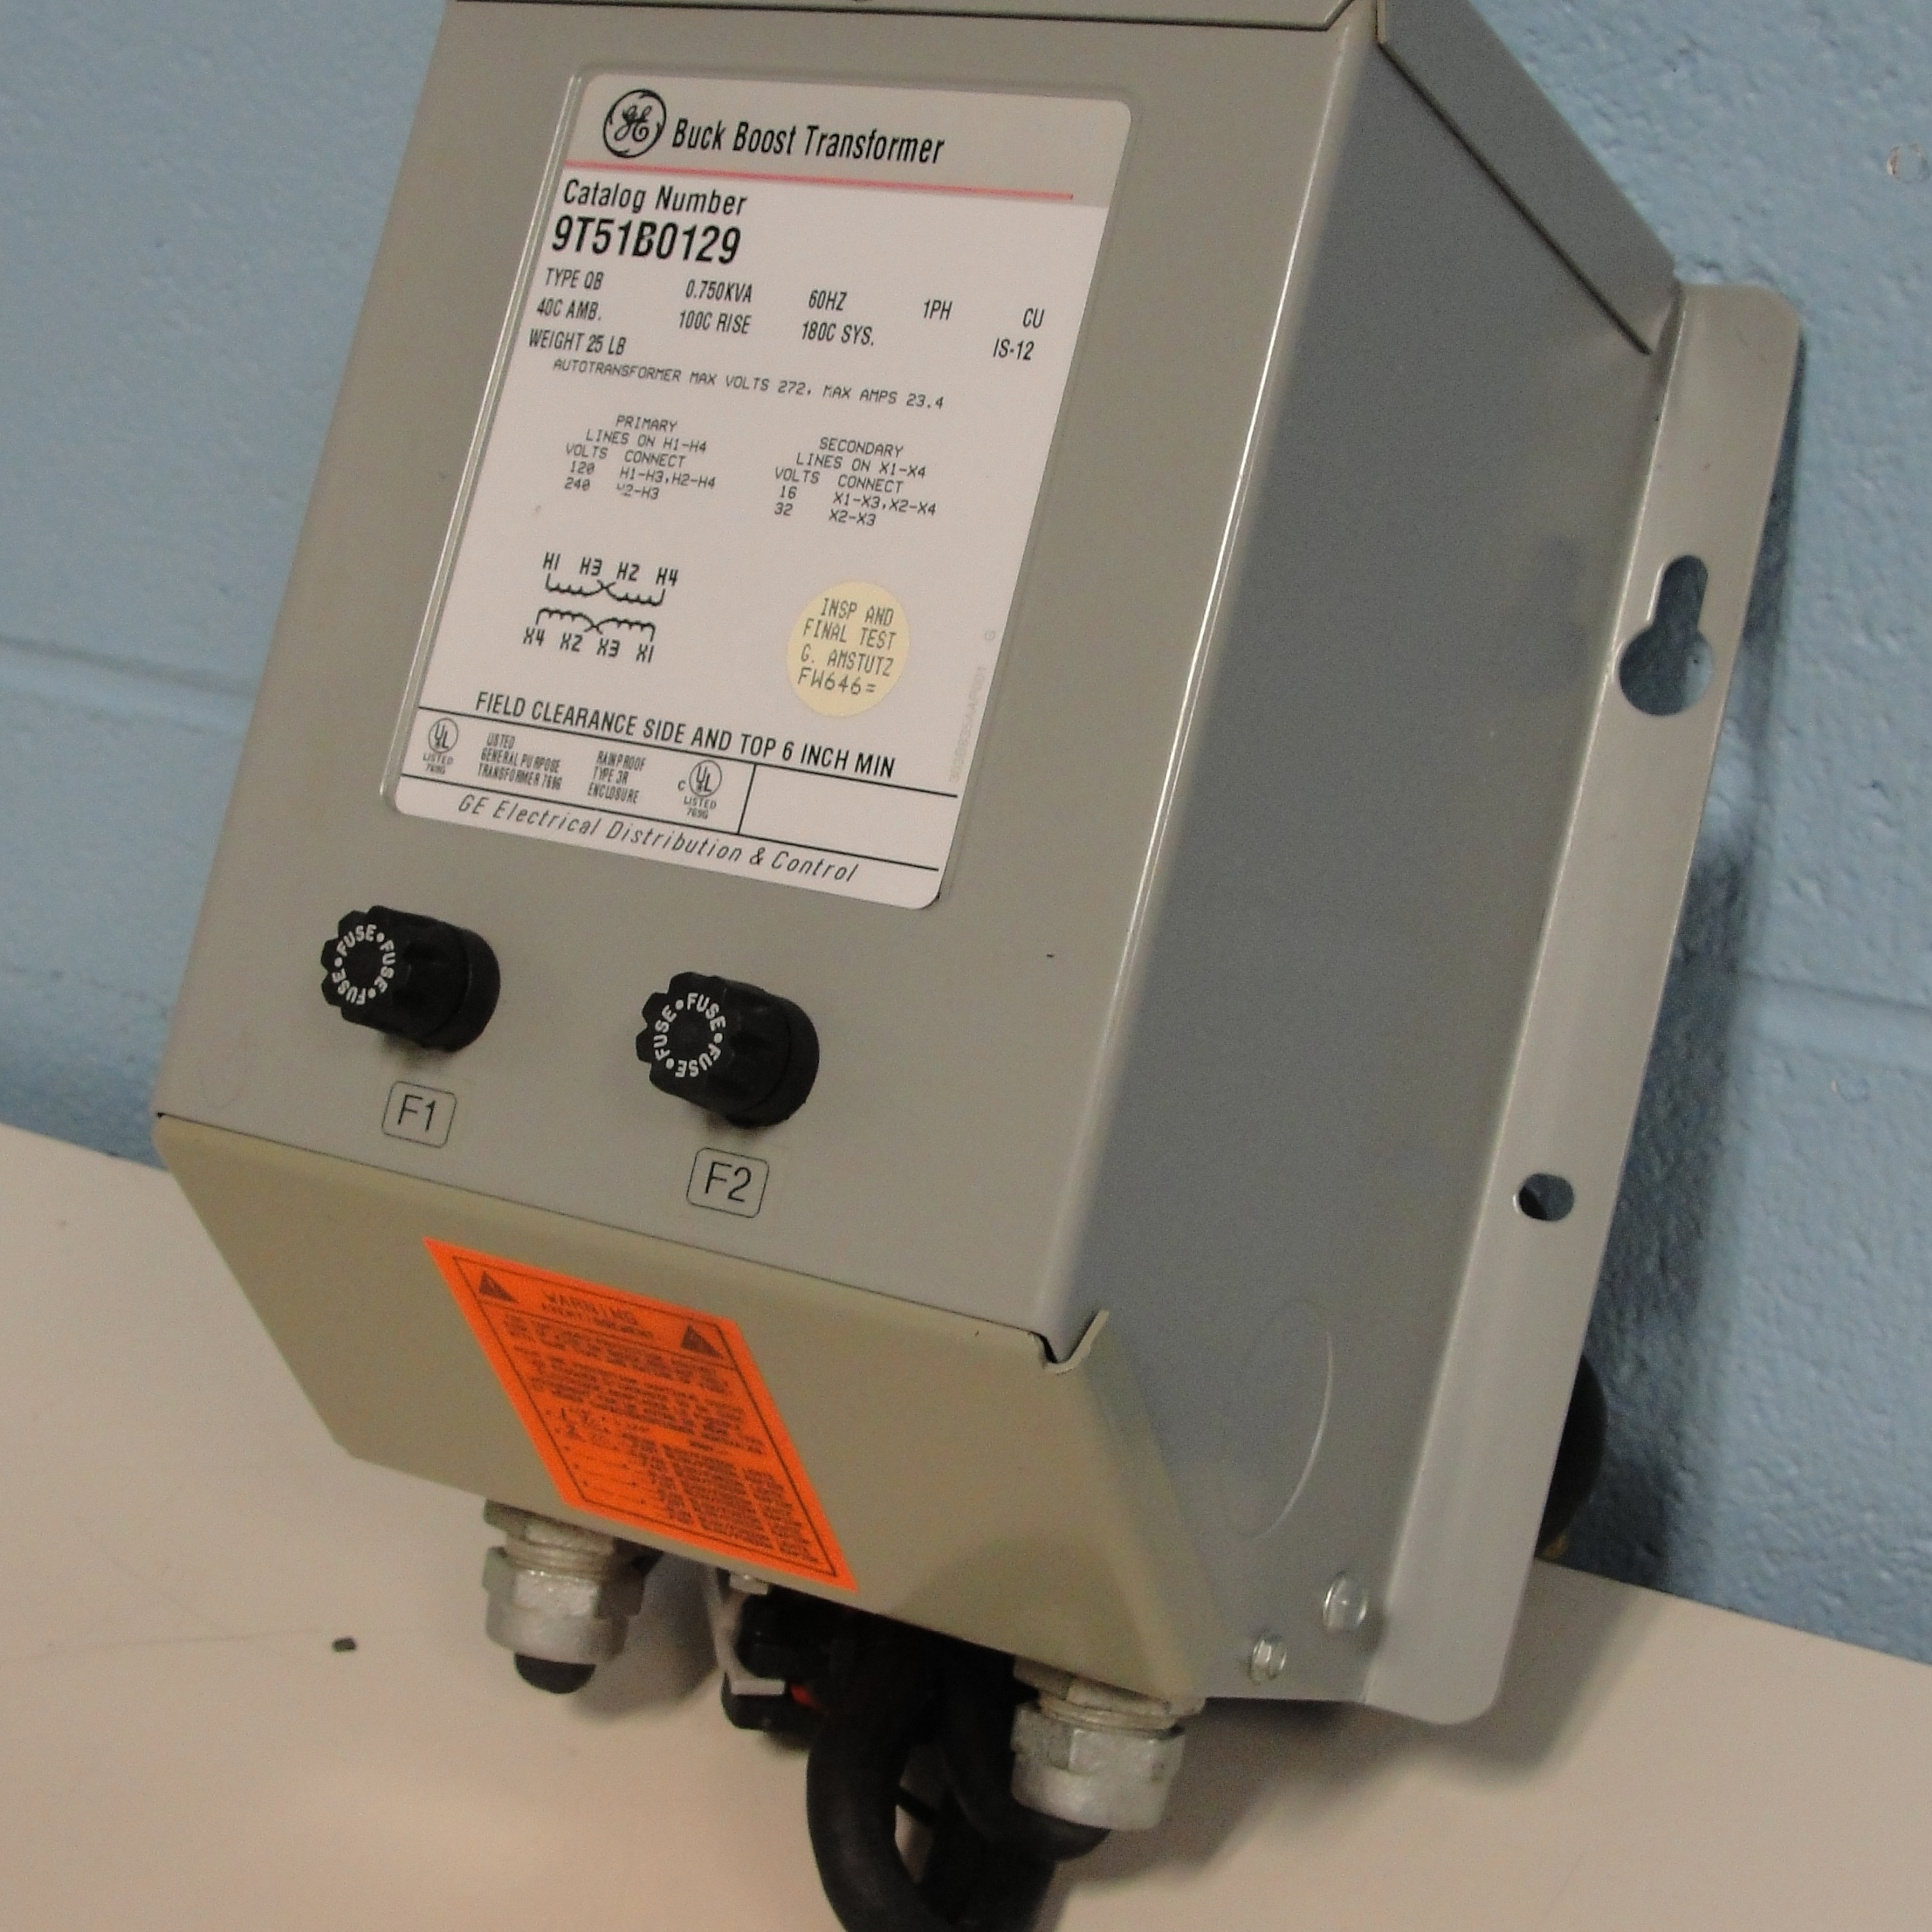 General Electric 9T51B0129 Buck Boost Transformer GT1112 Image